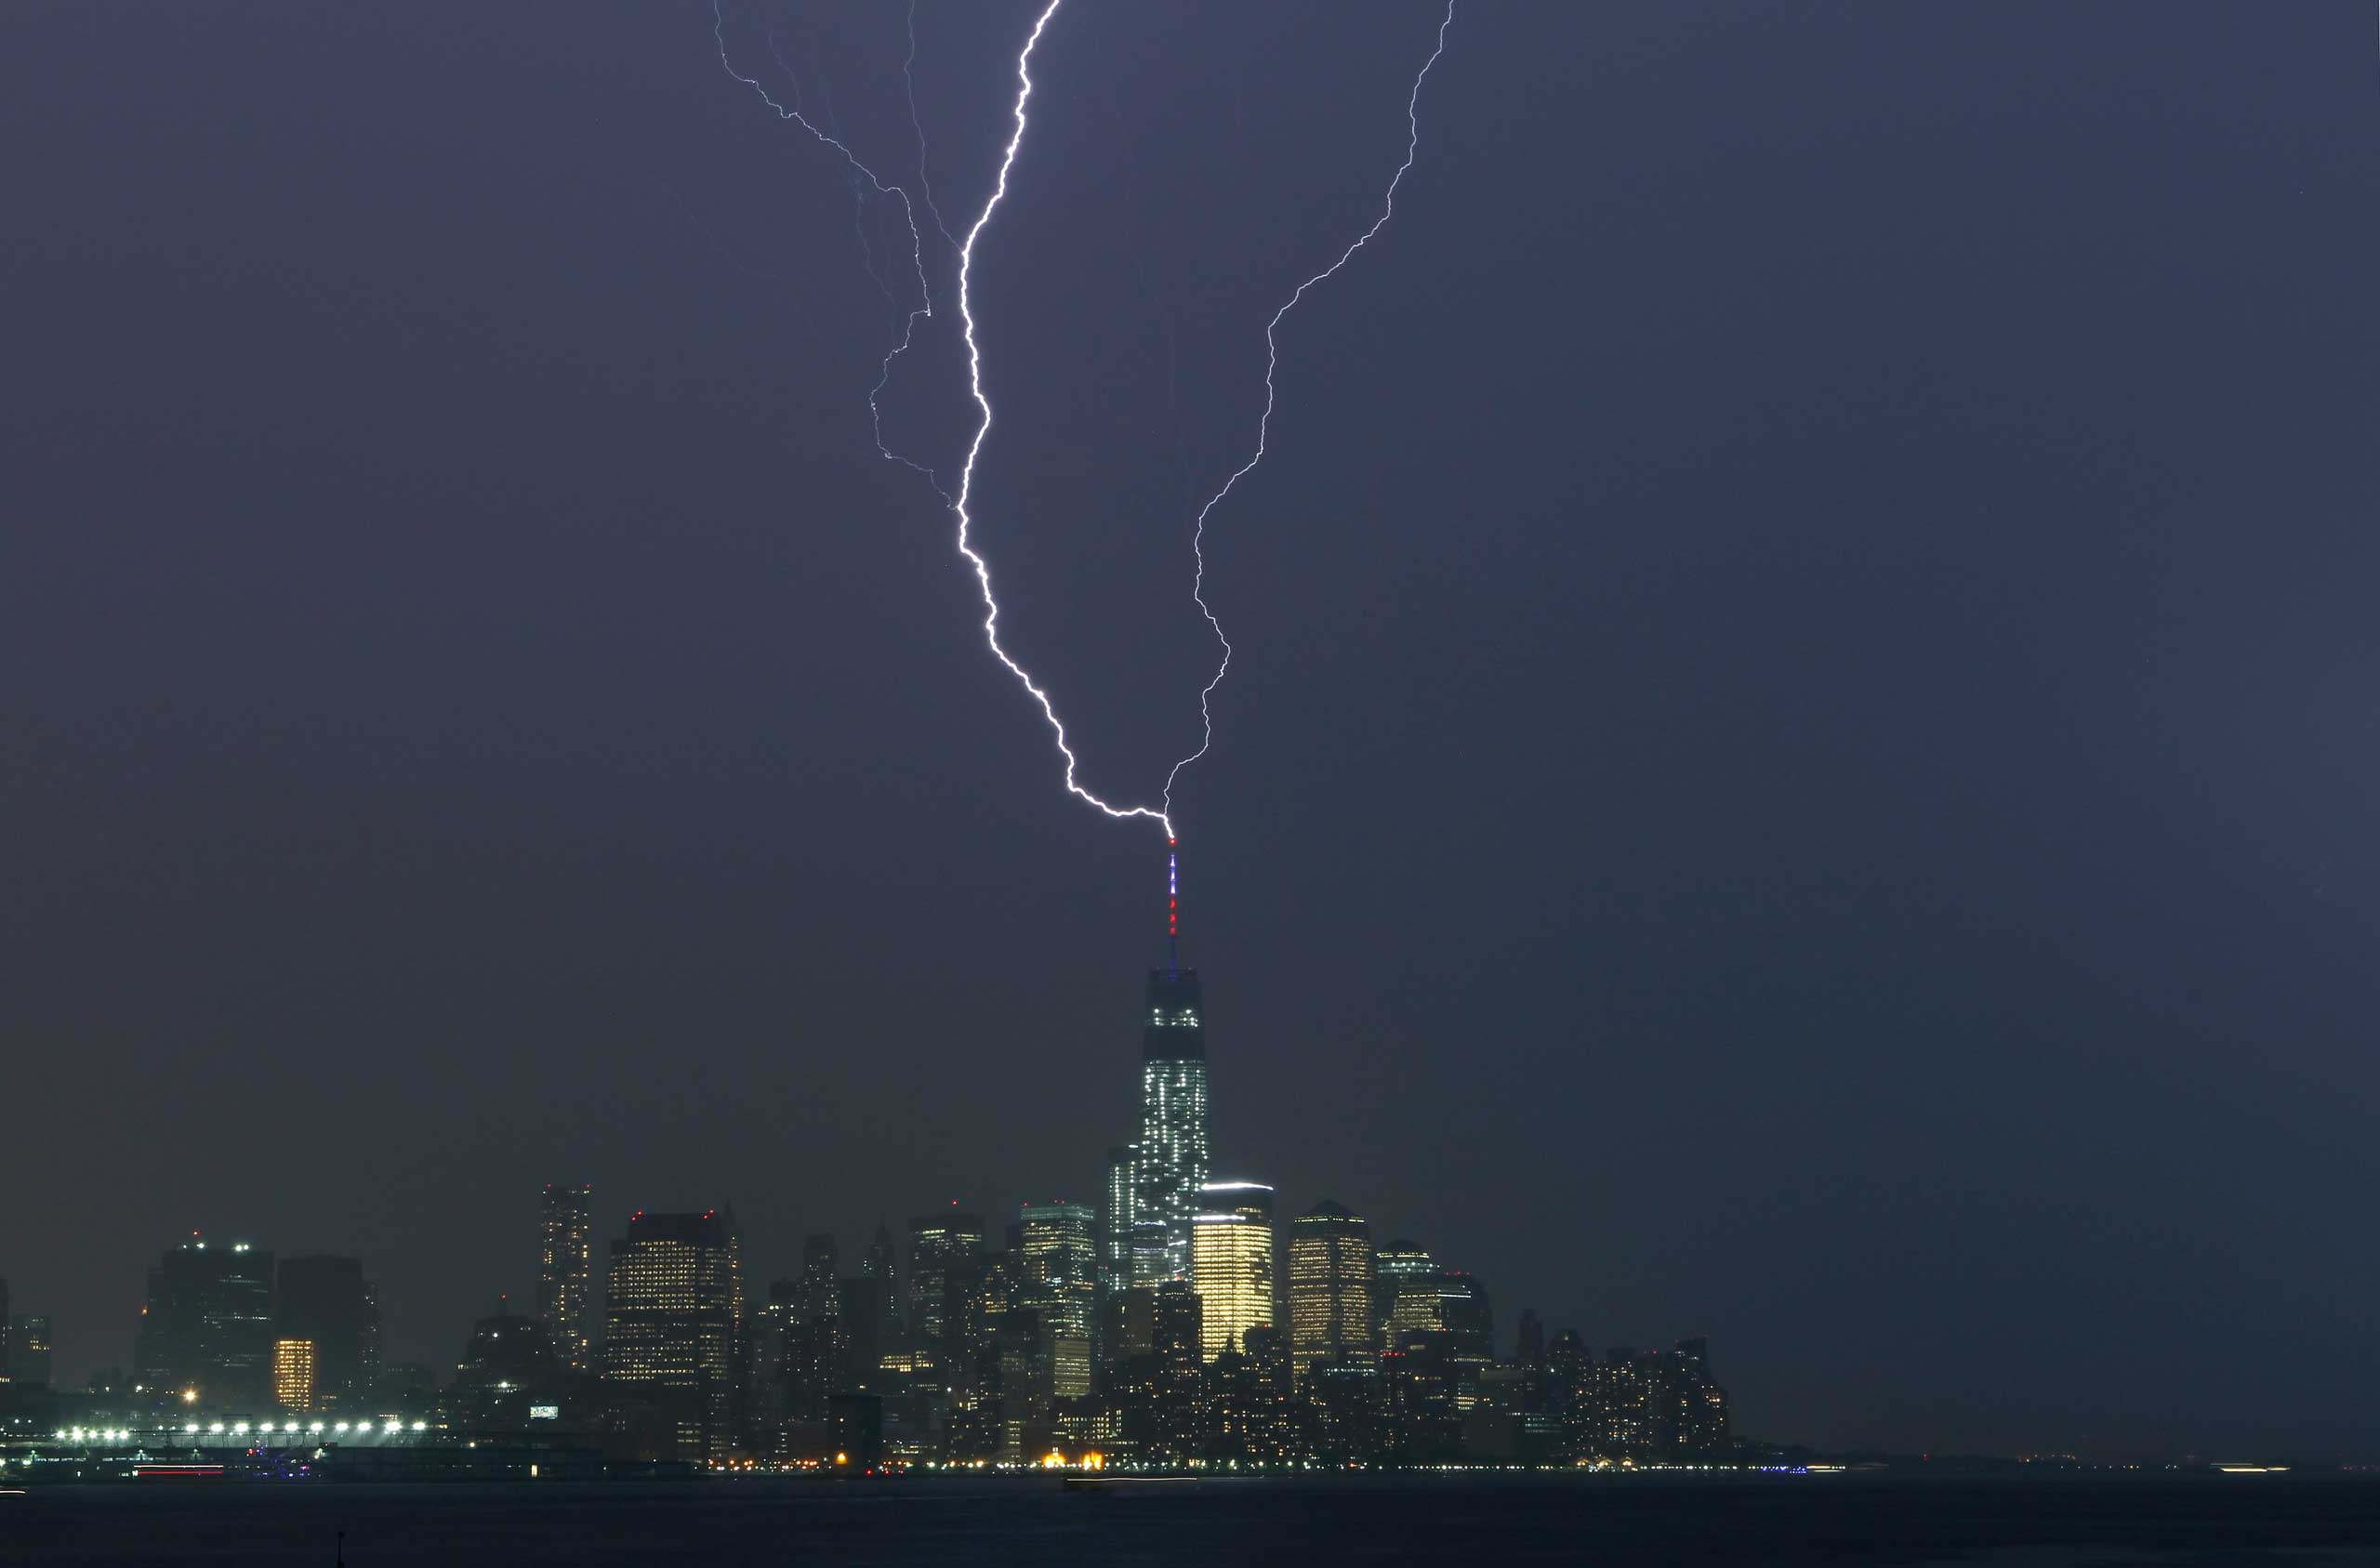 Two bolts of lightning hit the antenna on top of One World Trade Center, New York, May 23, 2014.